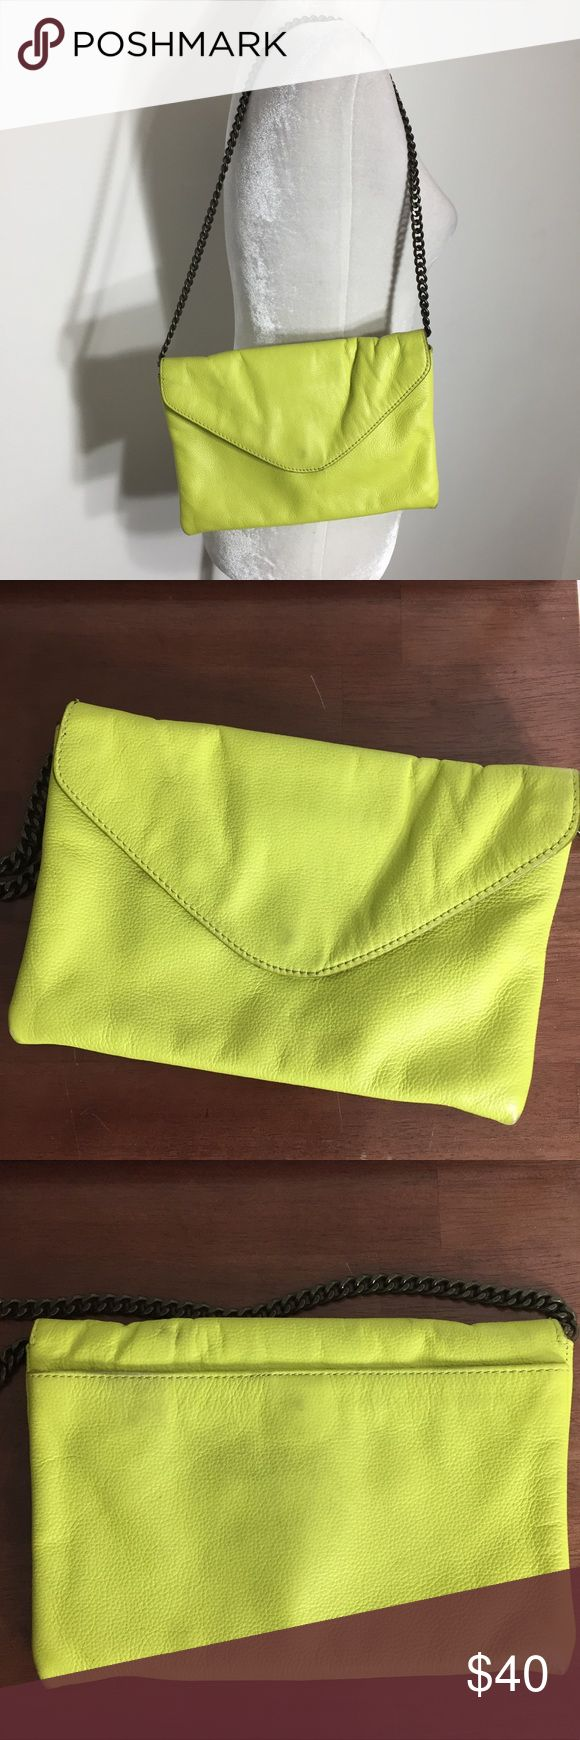 "J crew • bright neon yellow envelope clutch purse Great overall condition- some subtle wear/ discoloration spots around magnetic clasp, one spot inside. See images and ask any questions!  Measures approx 7"" x 10"" with 13"" chain drop J. Crew Bags Clutches & Wristlets"